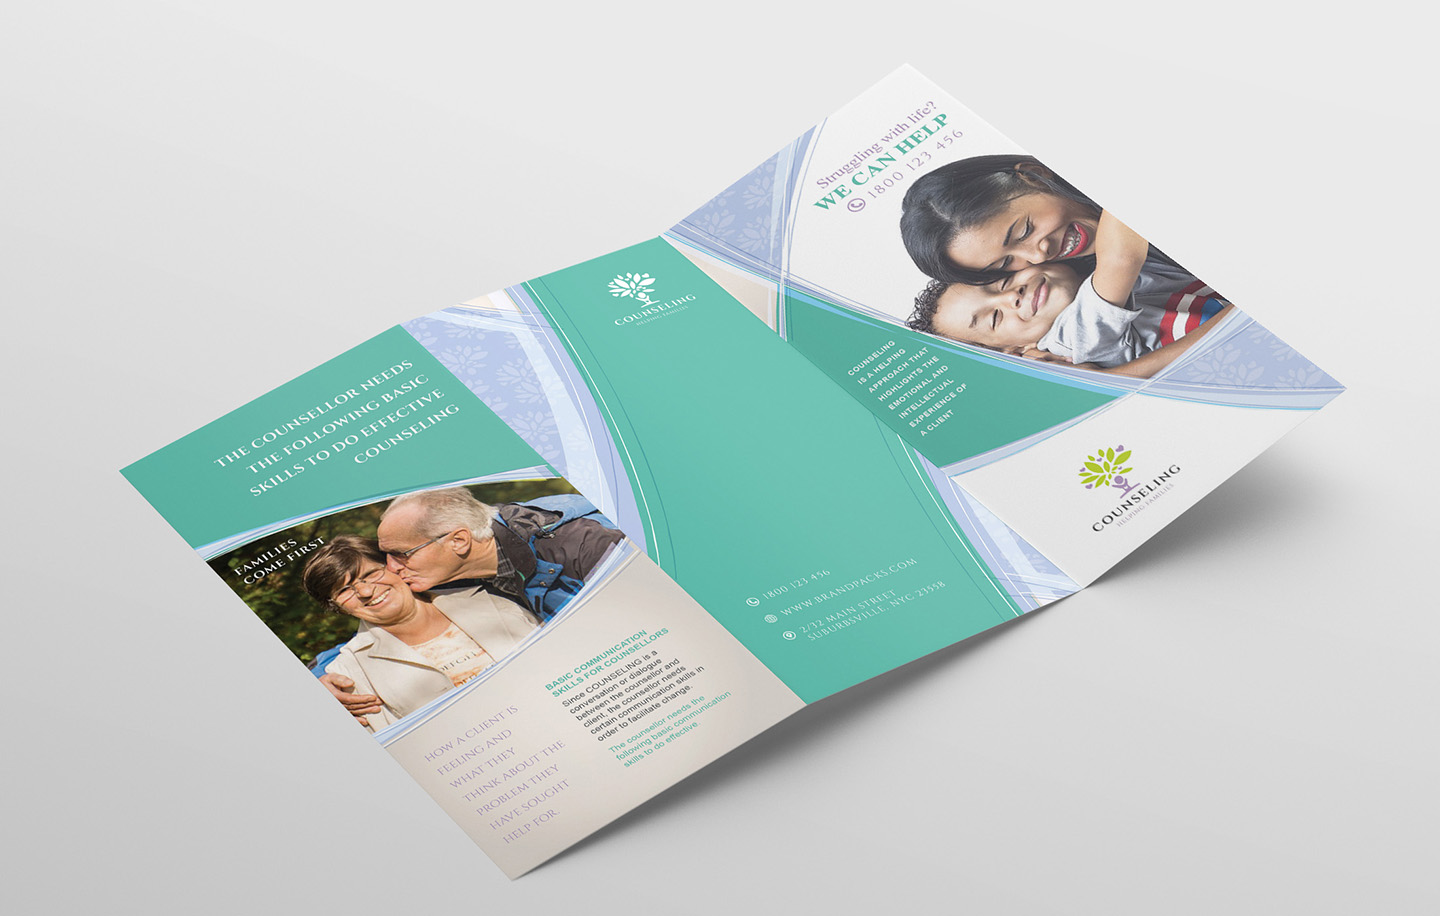 Counselling Service Tri-Fold Brochure Template example image 4